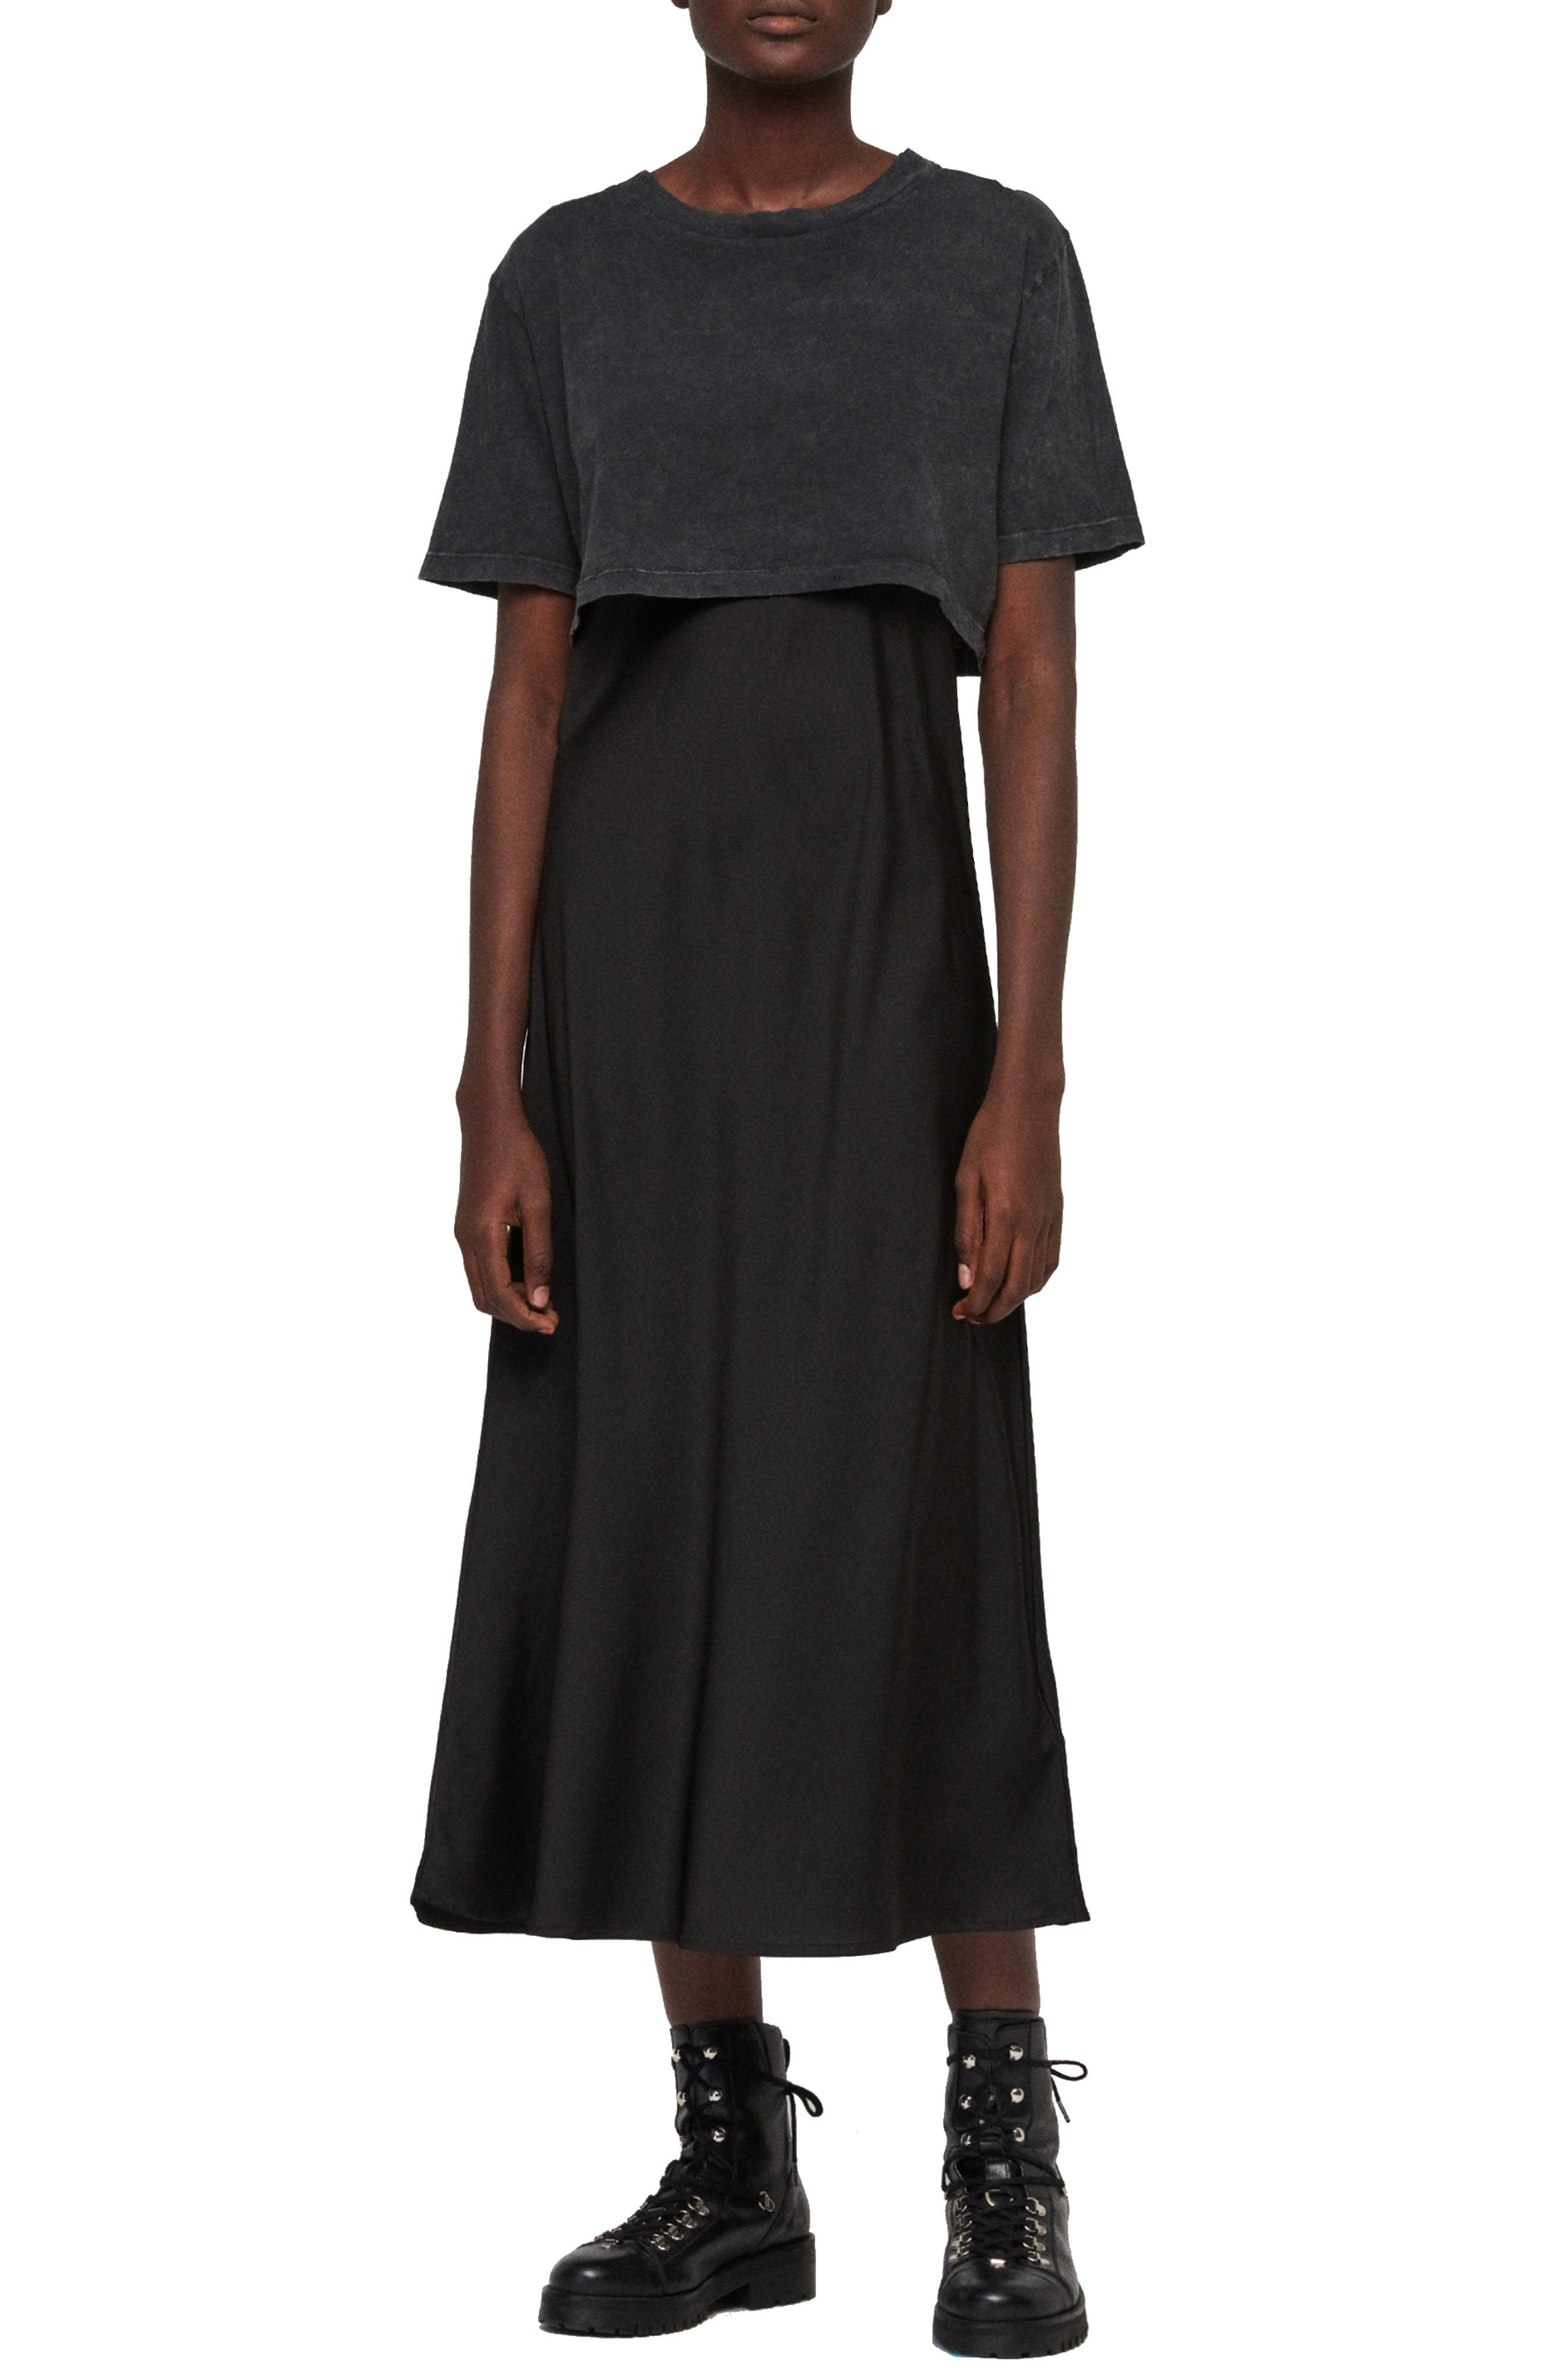 Benno Tee Topper Slipdress by Allsaints